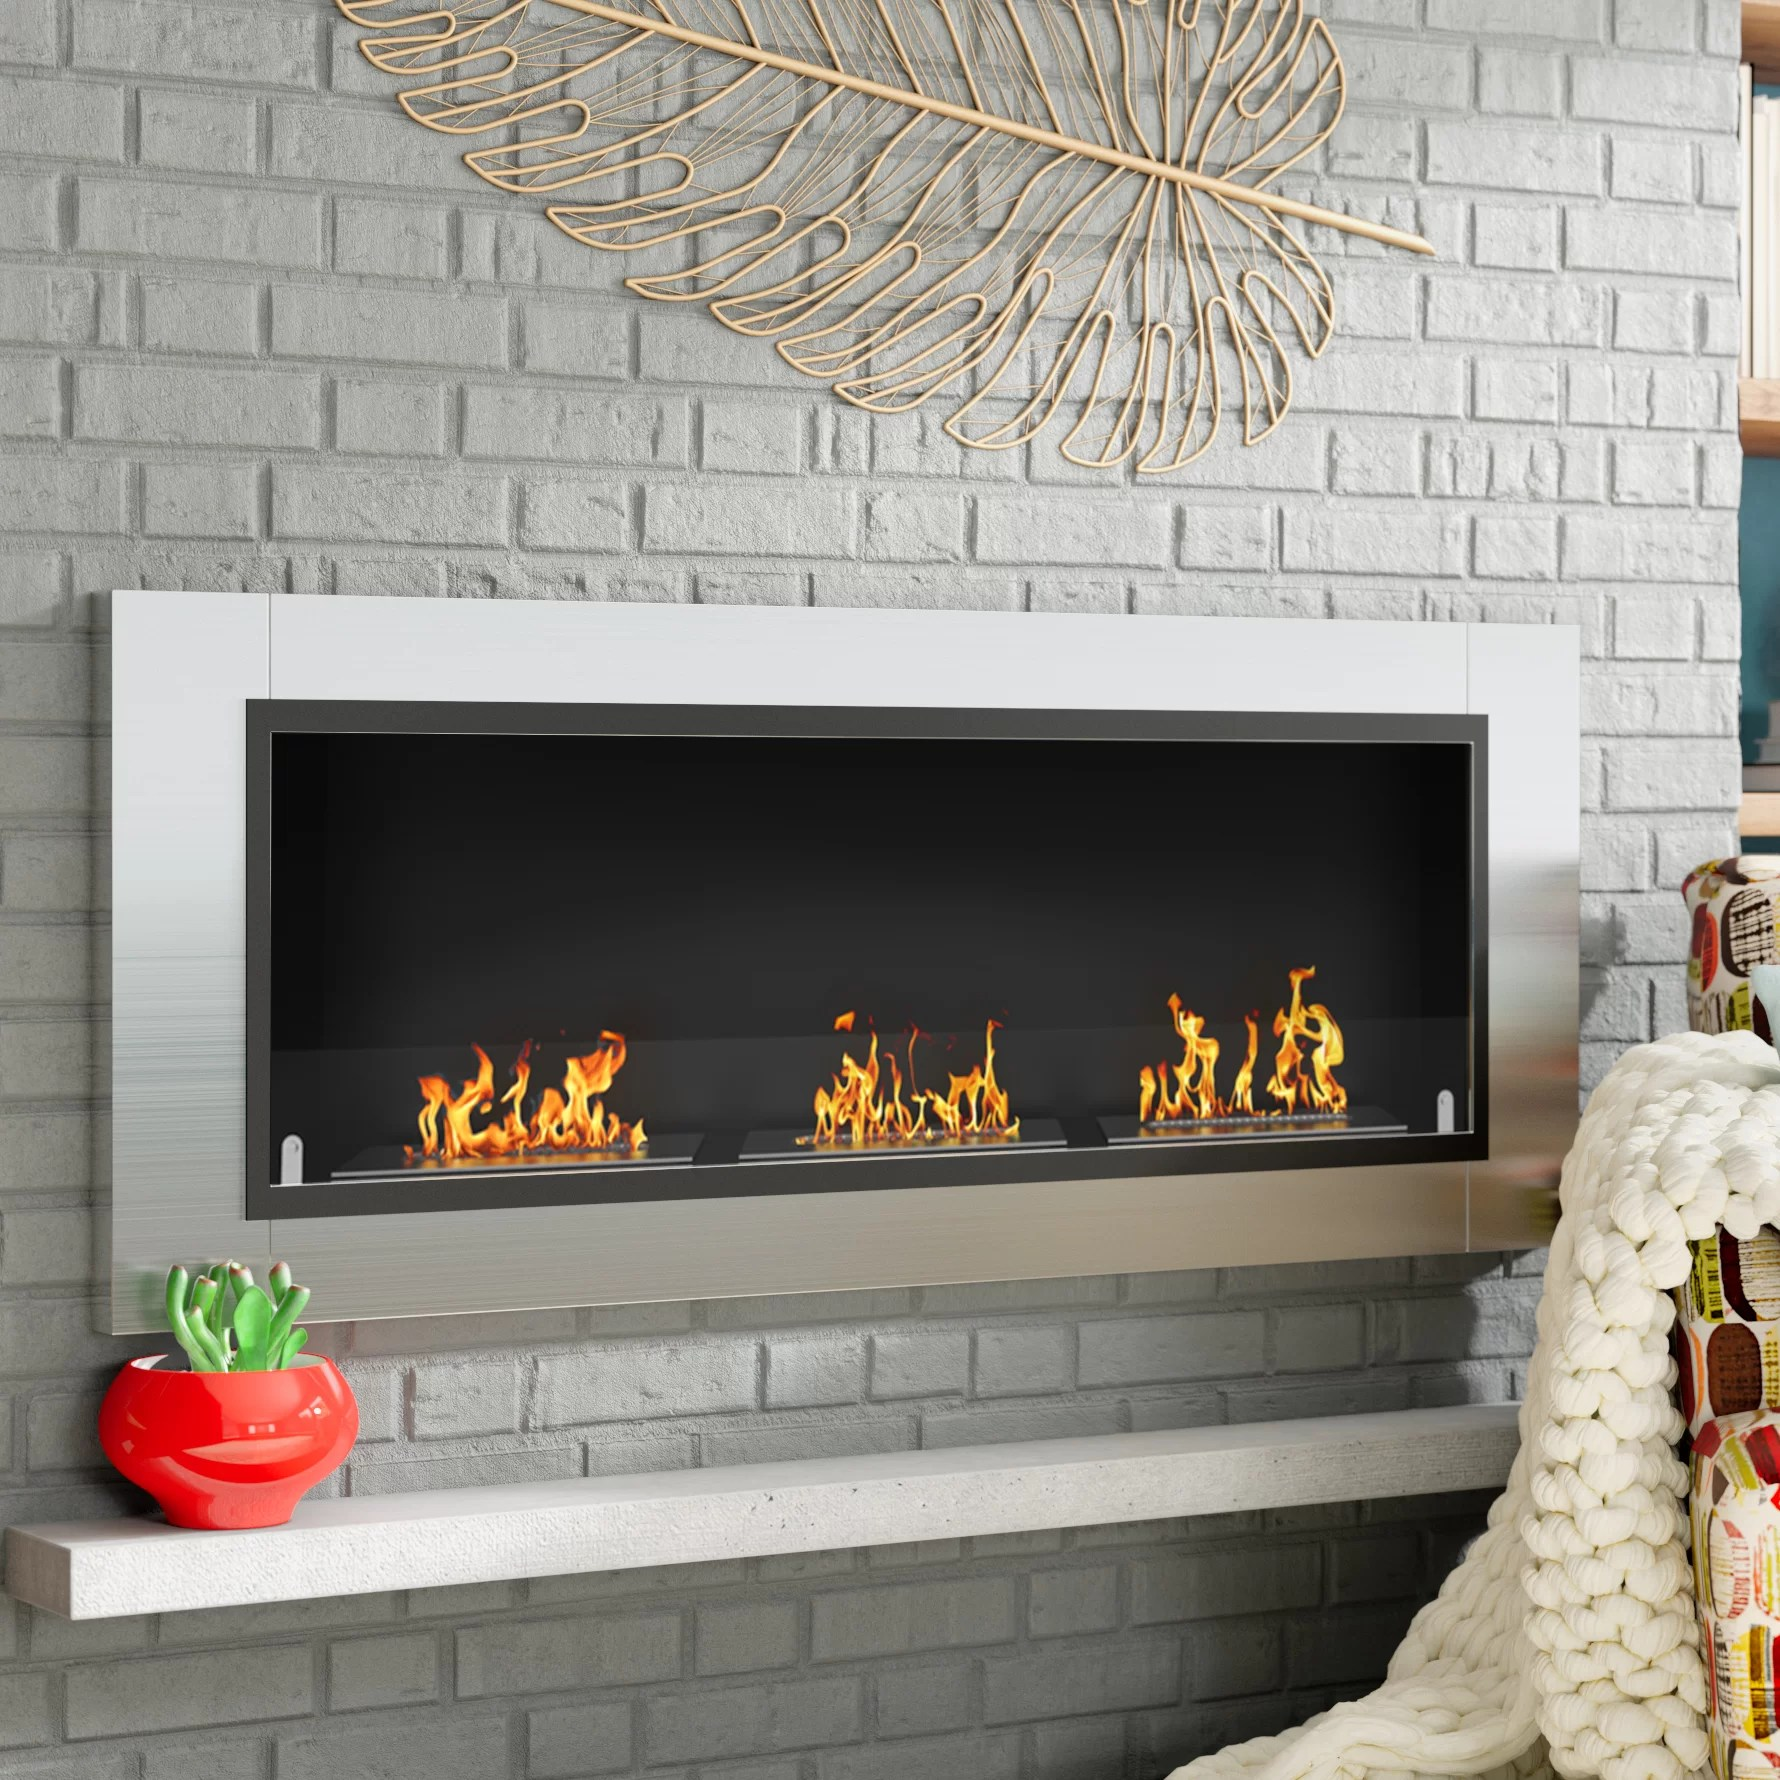 Ethanol Fireplaces Reviews Kelling Ventless Recessed Wall Mounted Bio Ethanol Fireplace